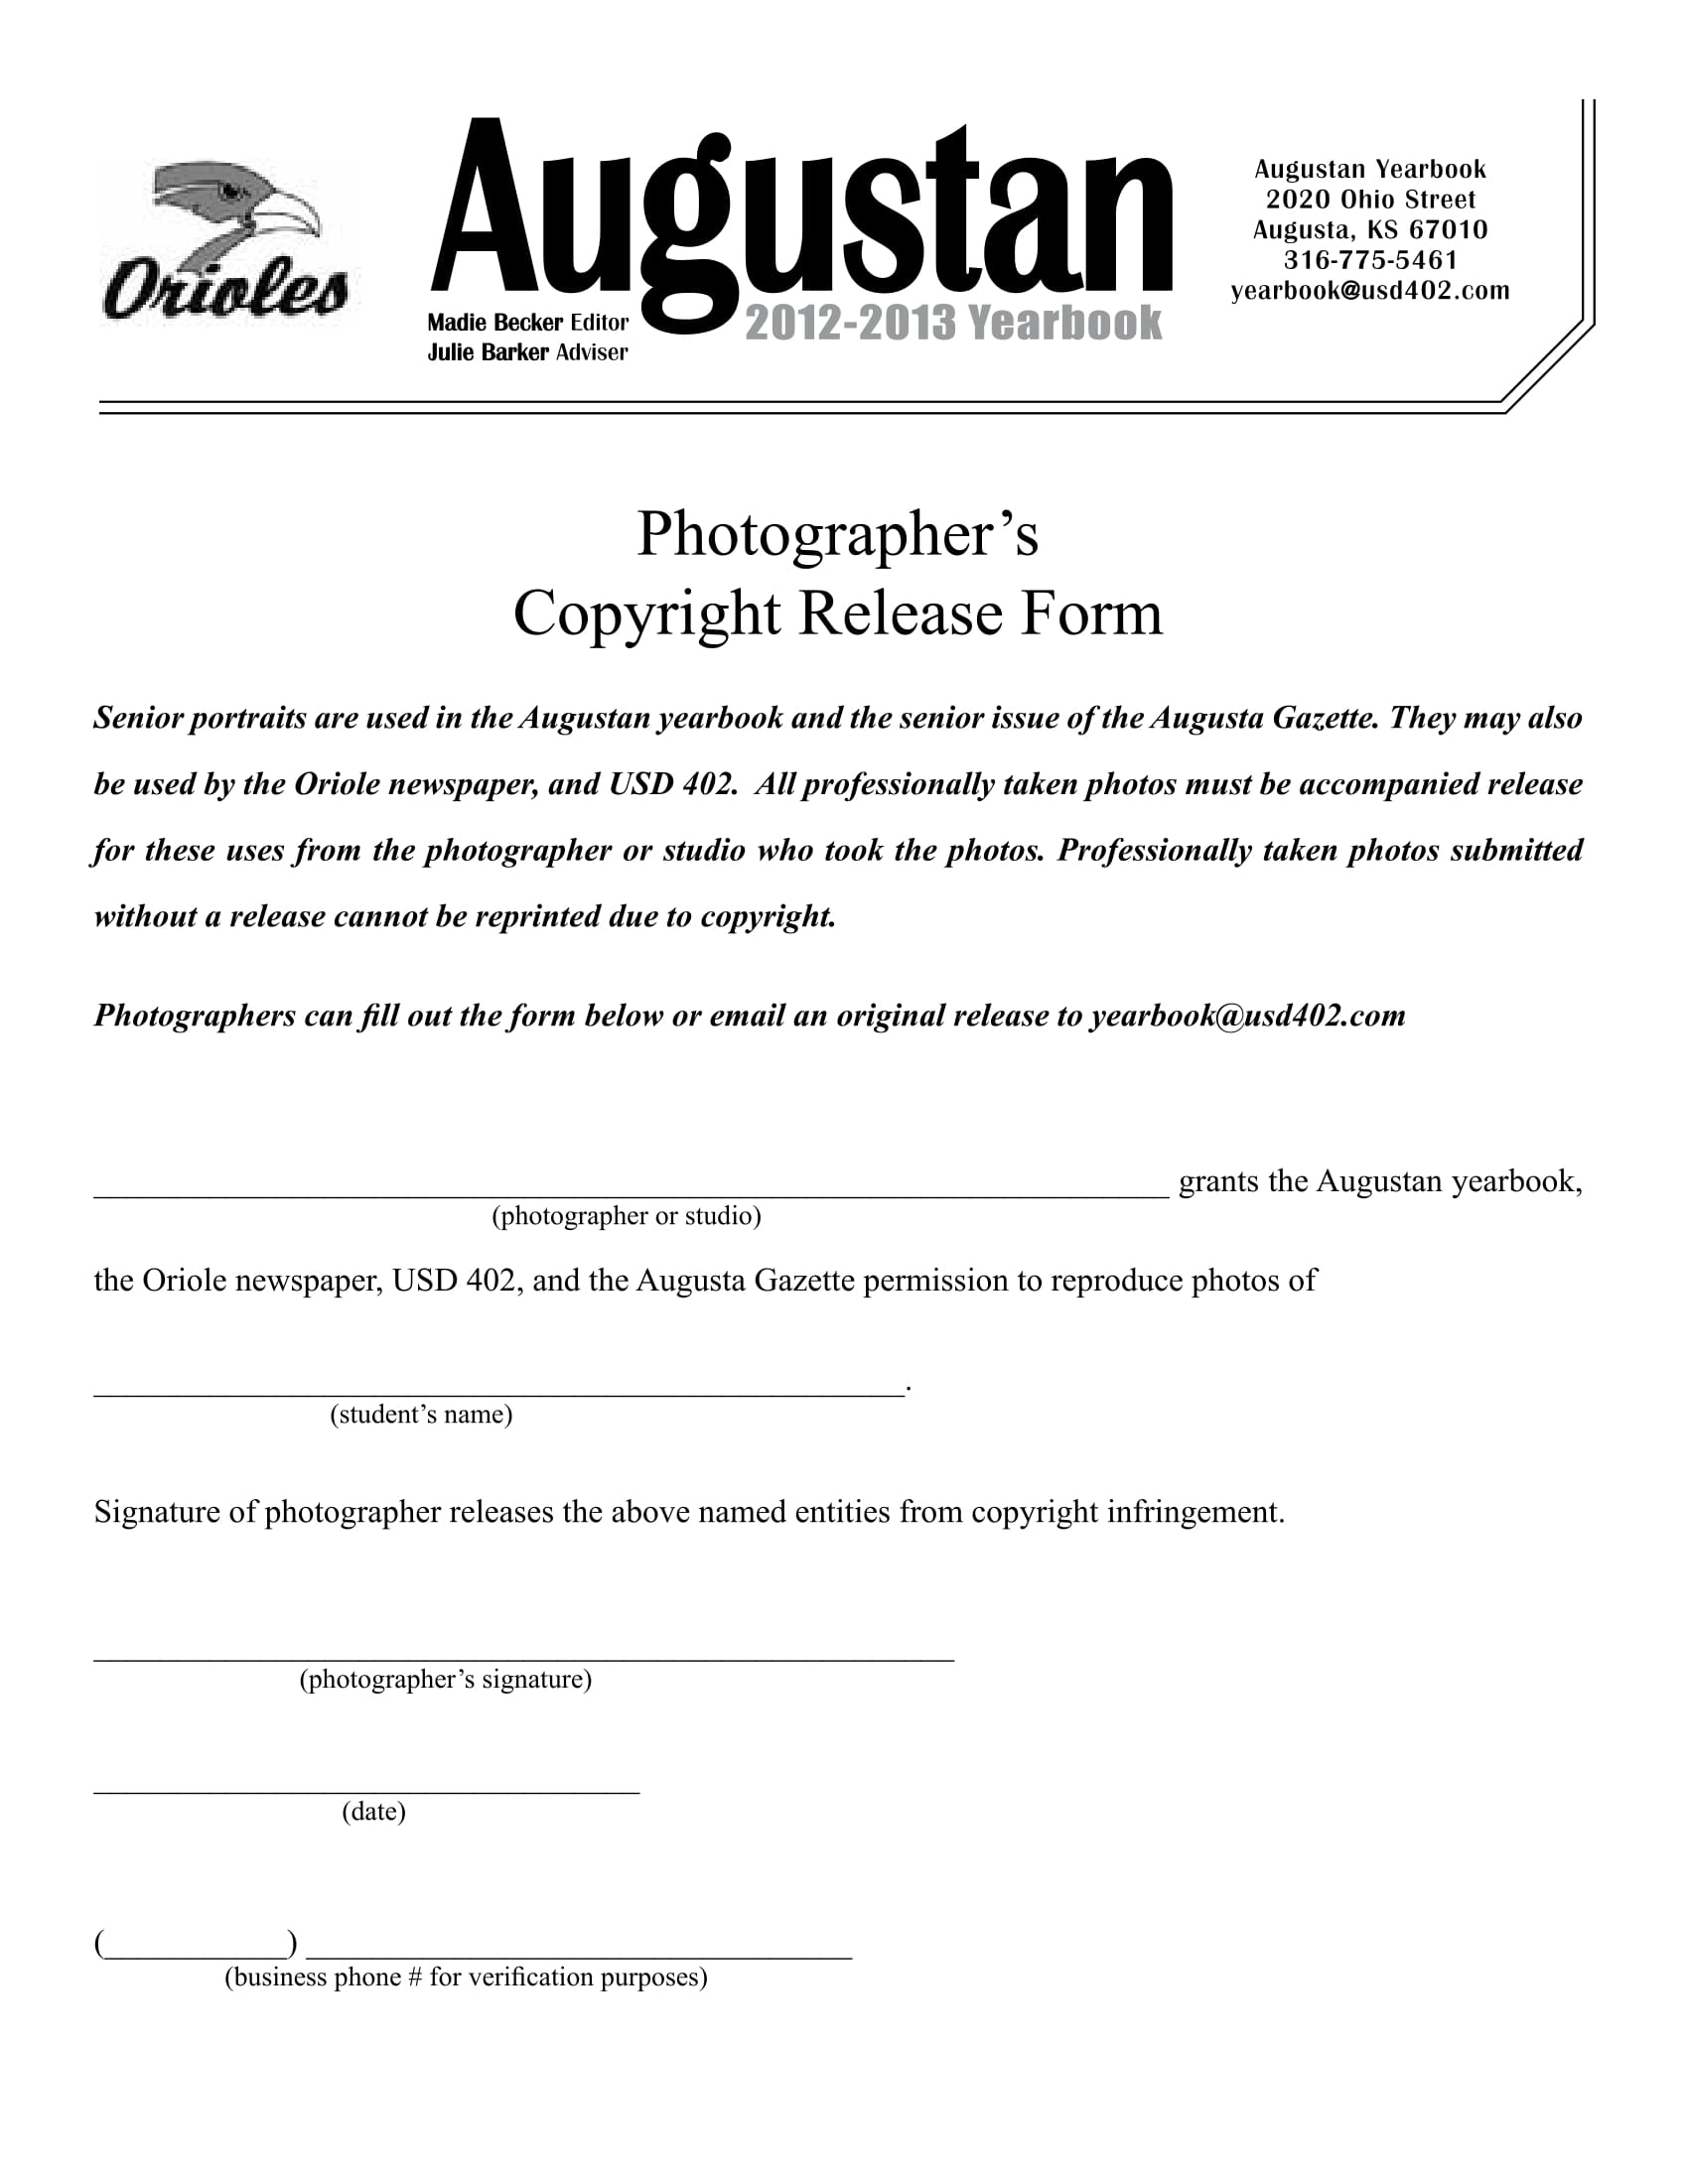 photography copyright release form 1